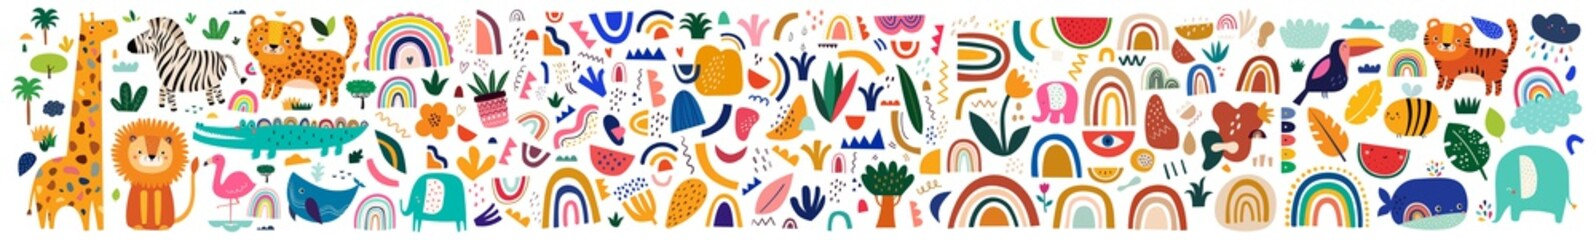 Fototapete - Decorative abstract horizontal banner with colorful doodles. Hand-drawn modern illustration